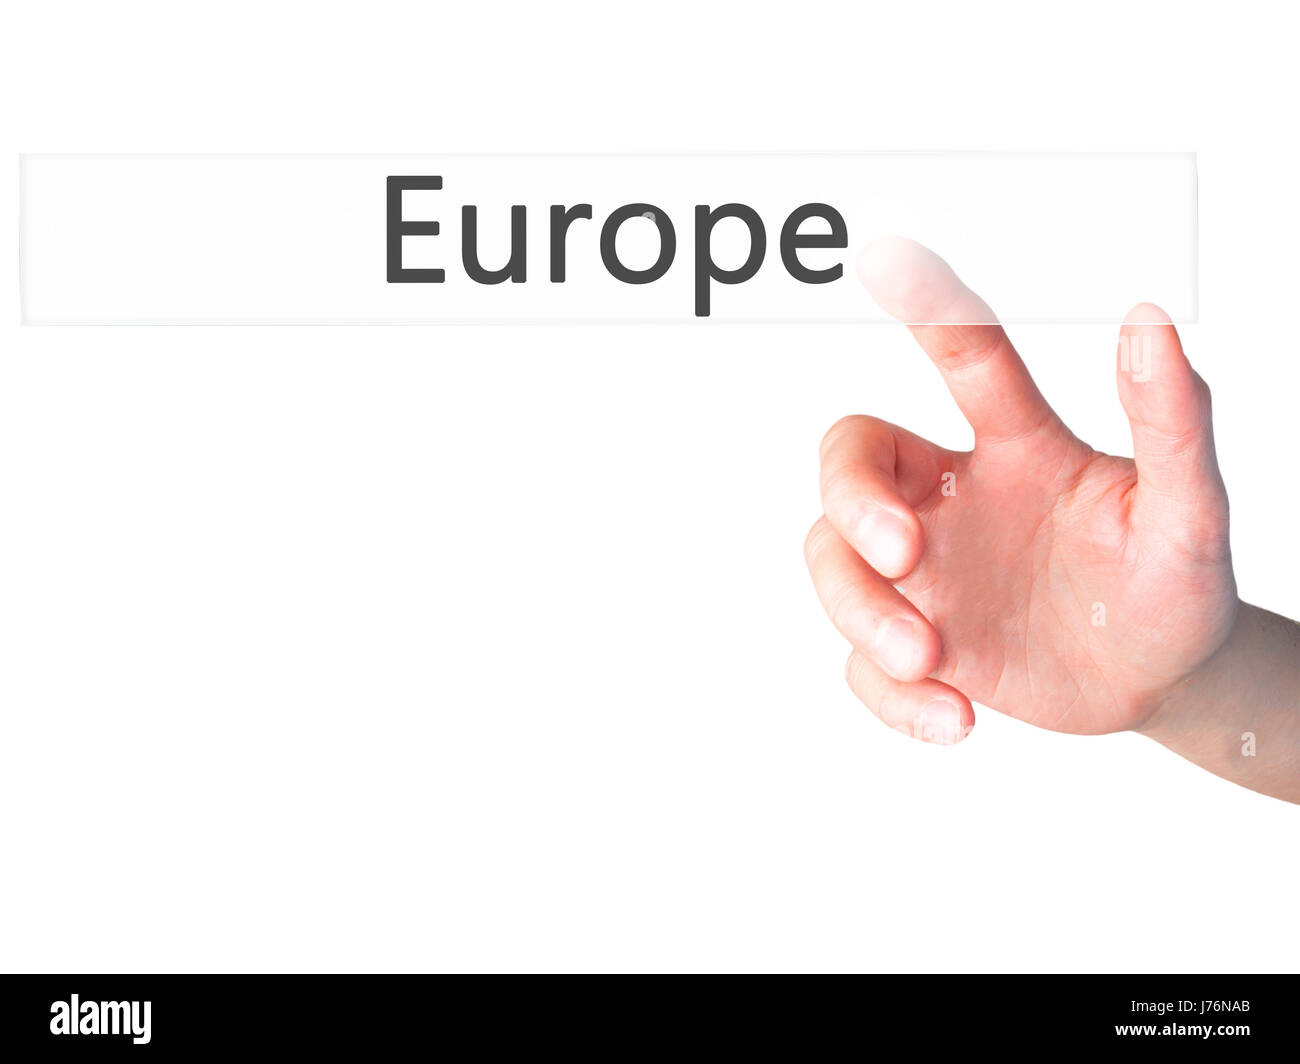 Europe - Hand pressing a button on blurred background concept . Business, technology, internet concept. Stock Photo - Stock Image